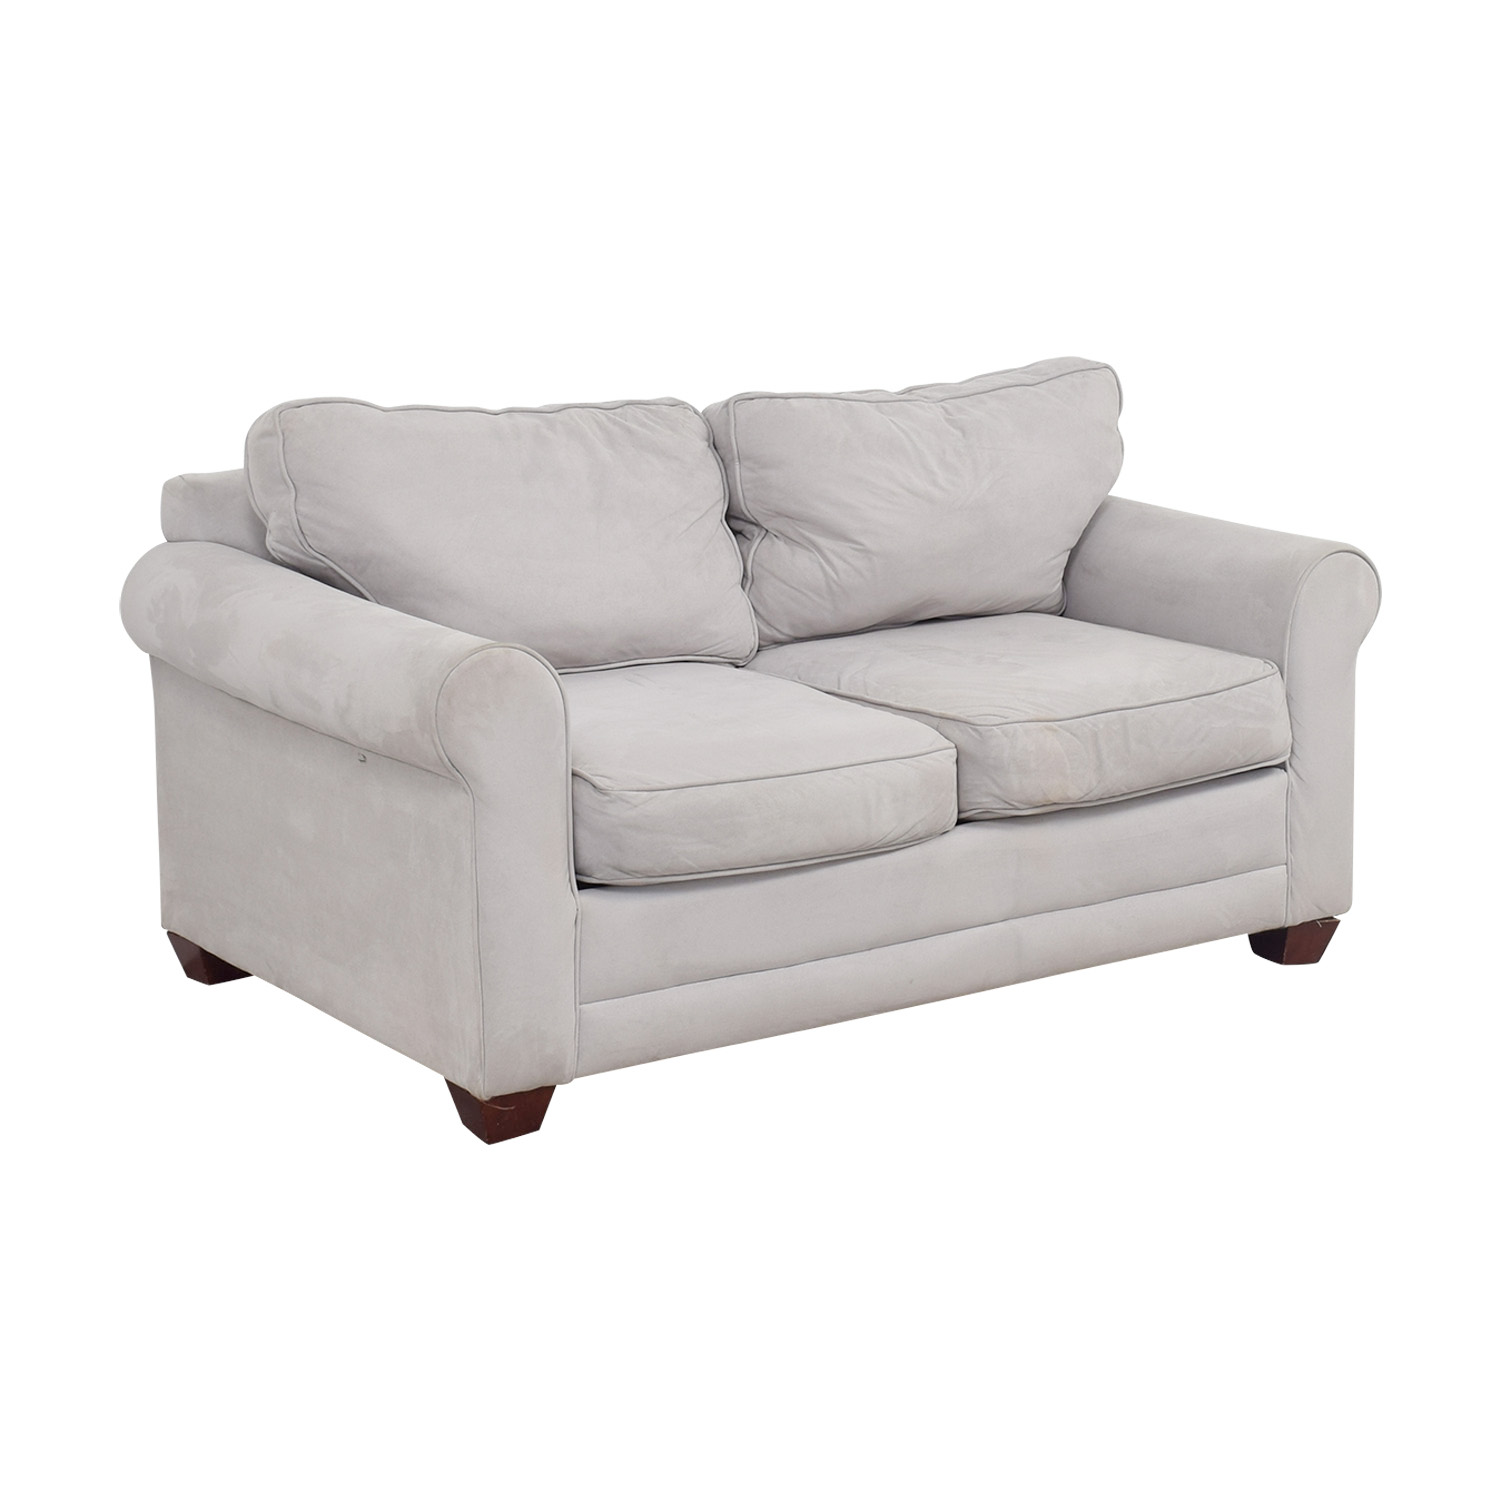 Grey Microfiber Curved Arm Loveseat / Sofas